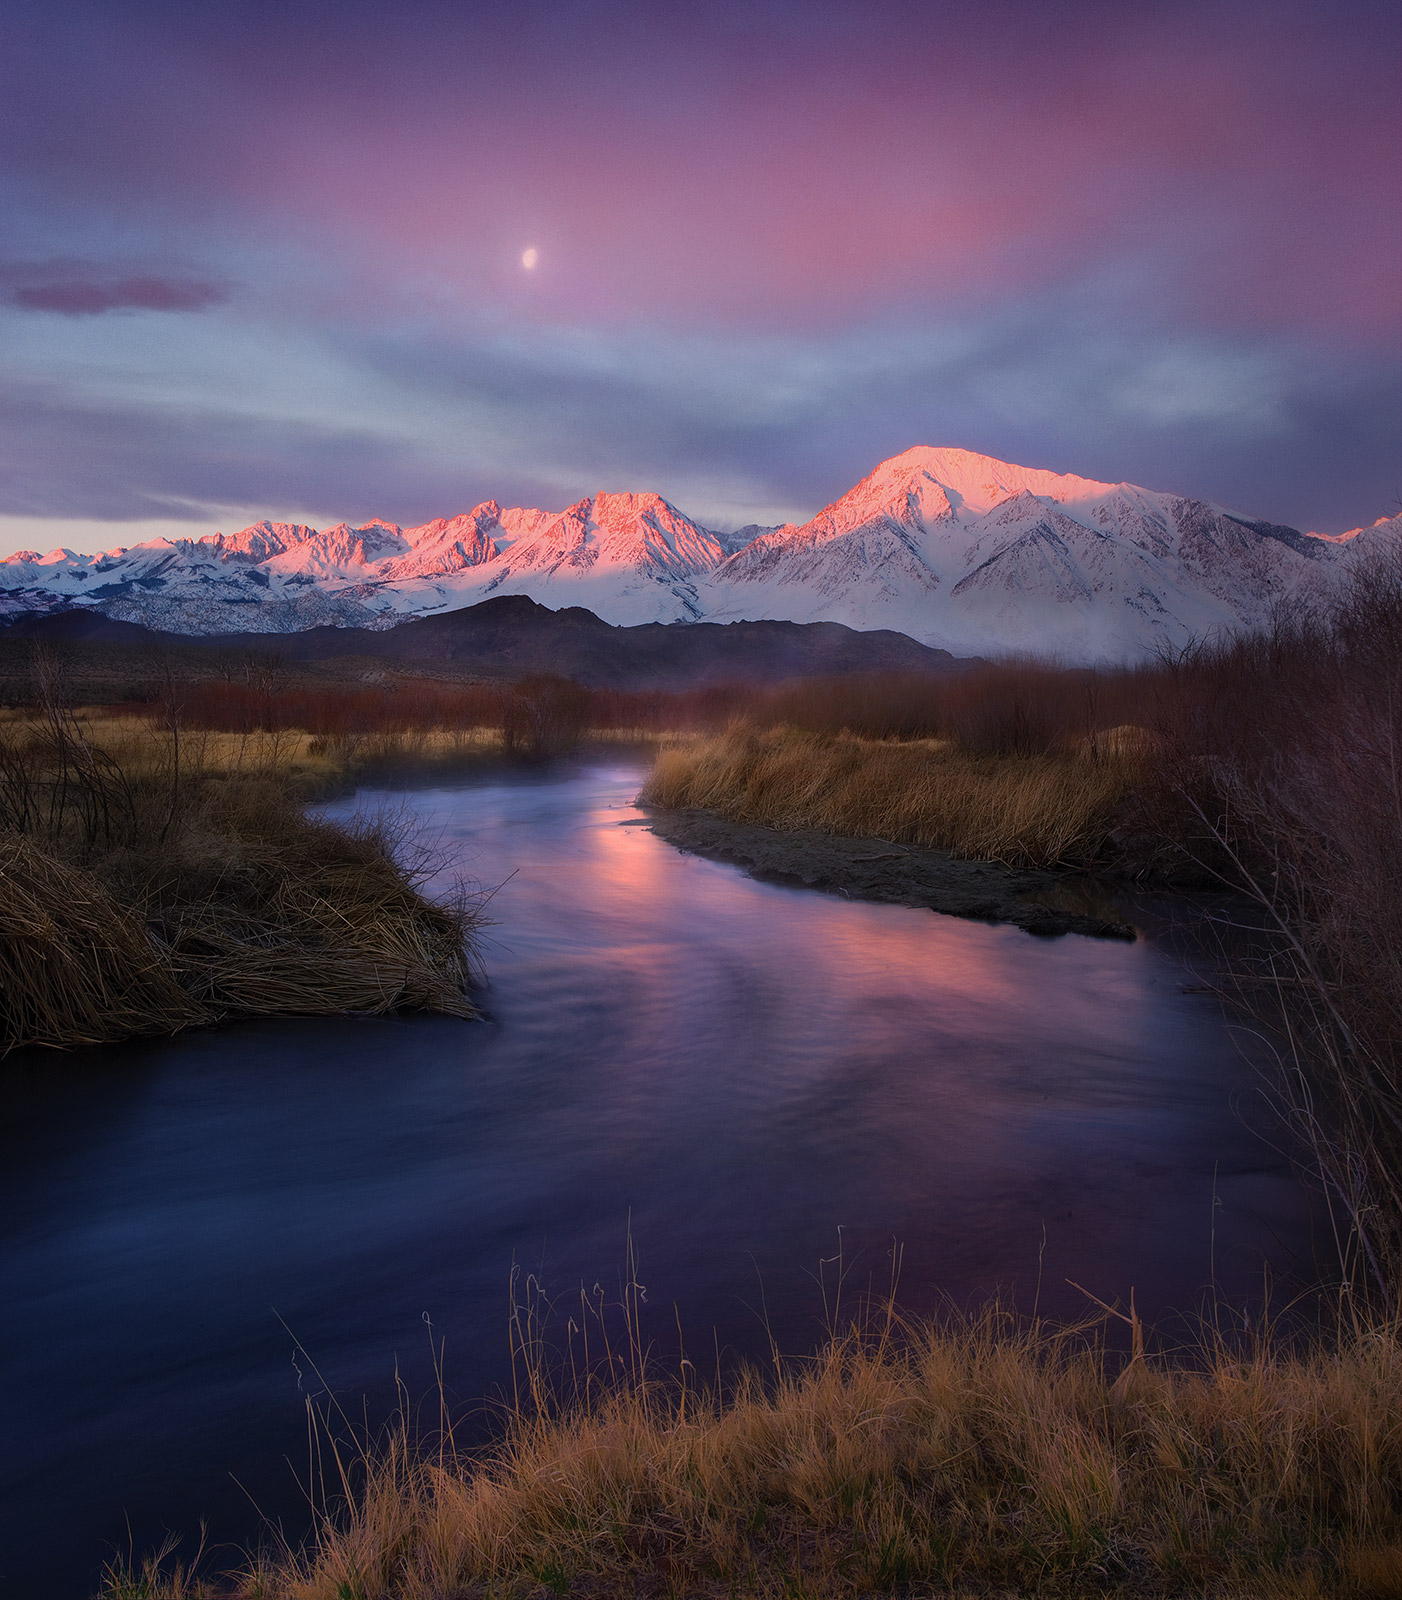 Beautiful sunrise glow over the Sierra mountains from Owens Valley, California.